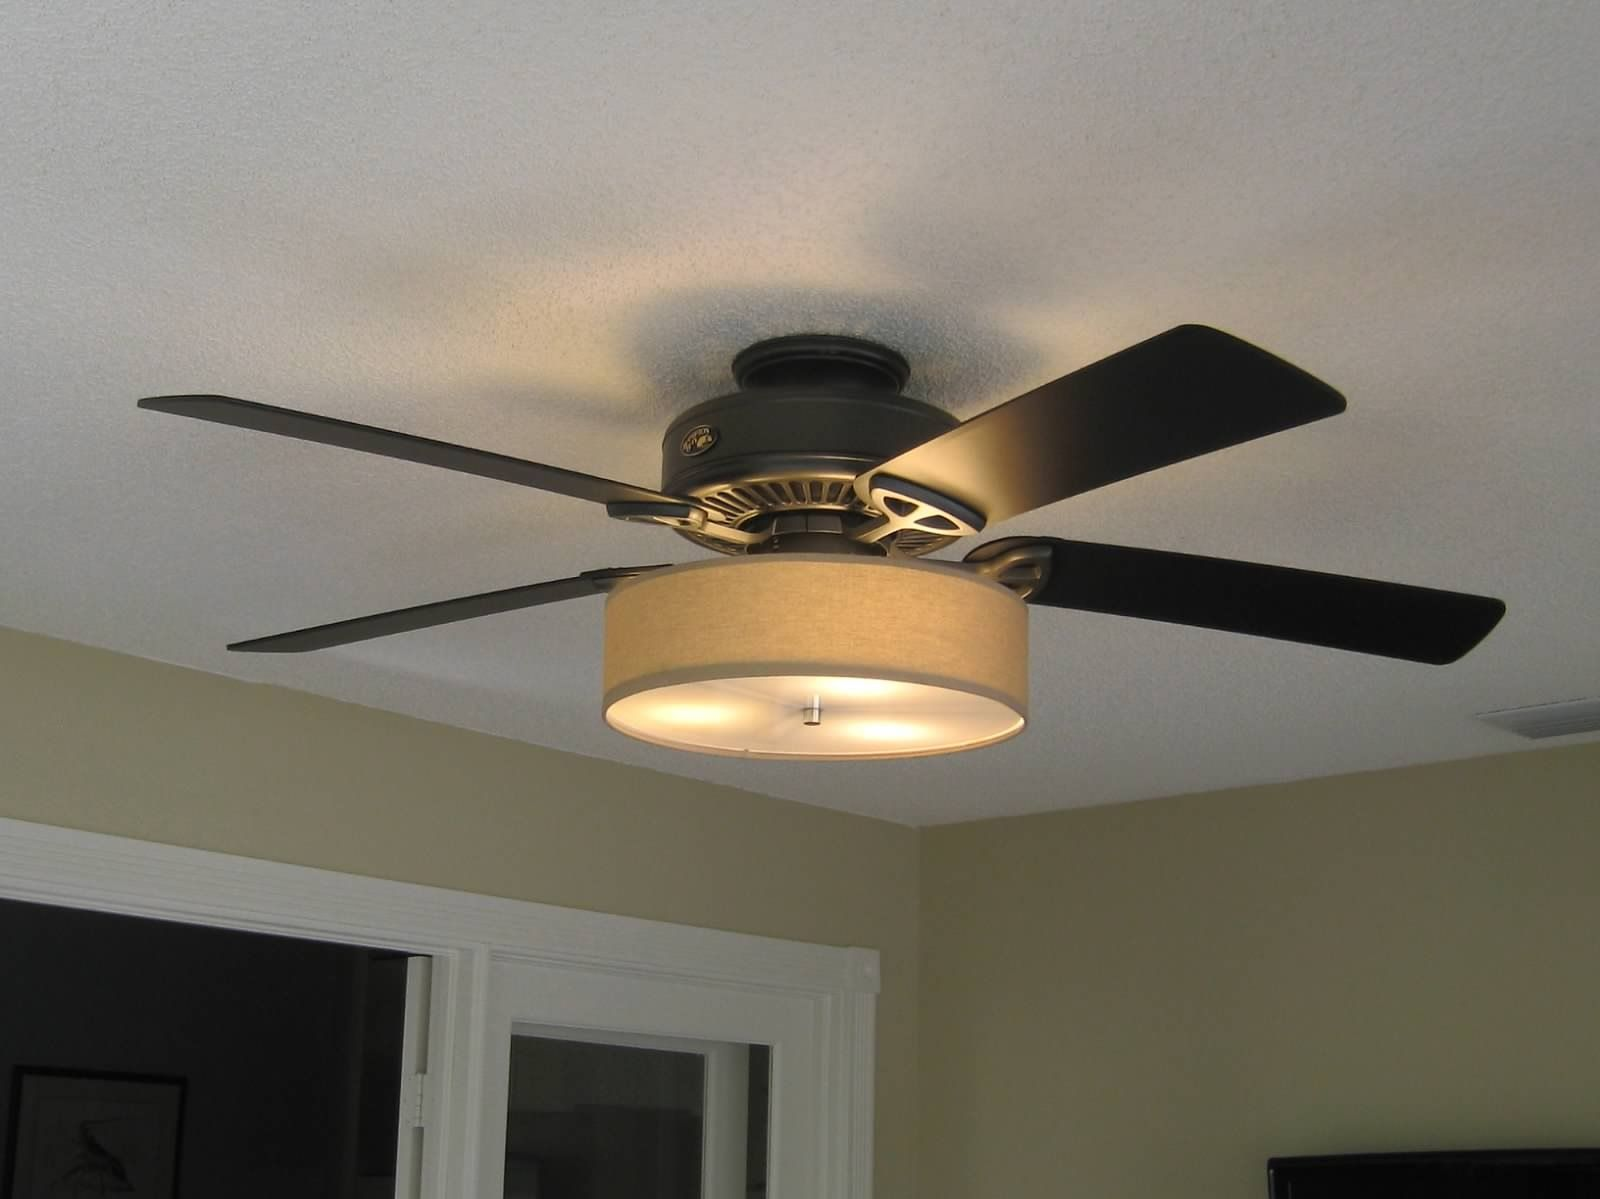 kitchen fan light Low Profile Linen Drum Shade Kit for Ceiling Fan S T Lighting LLC